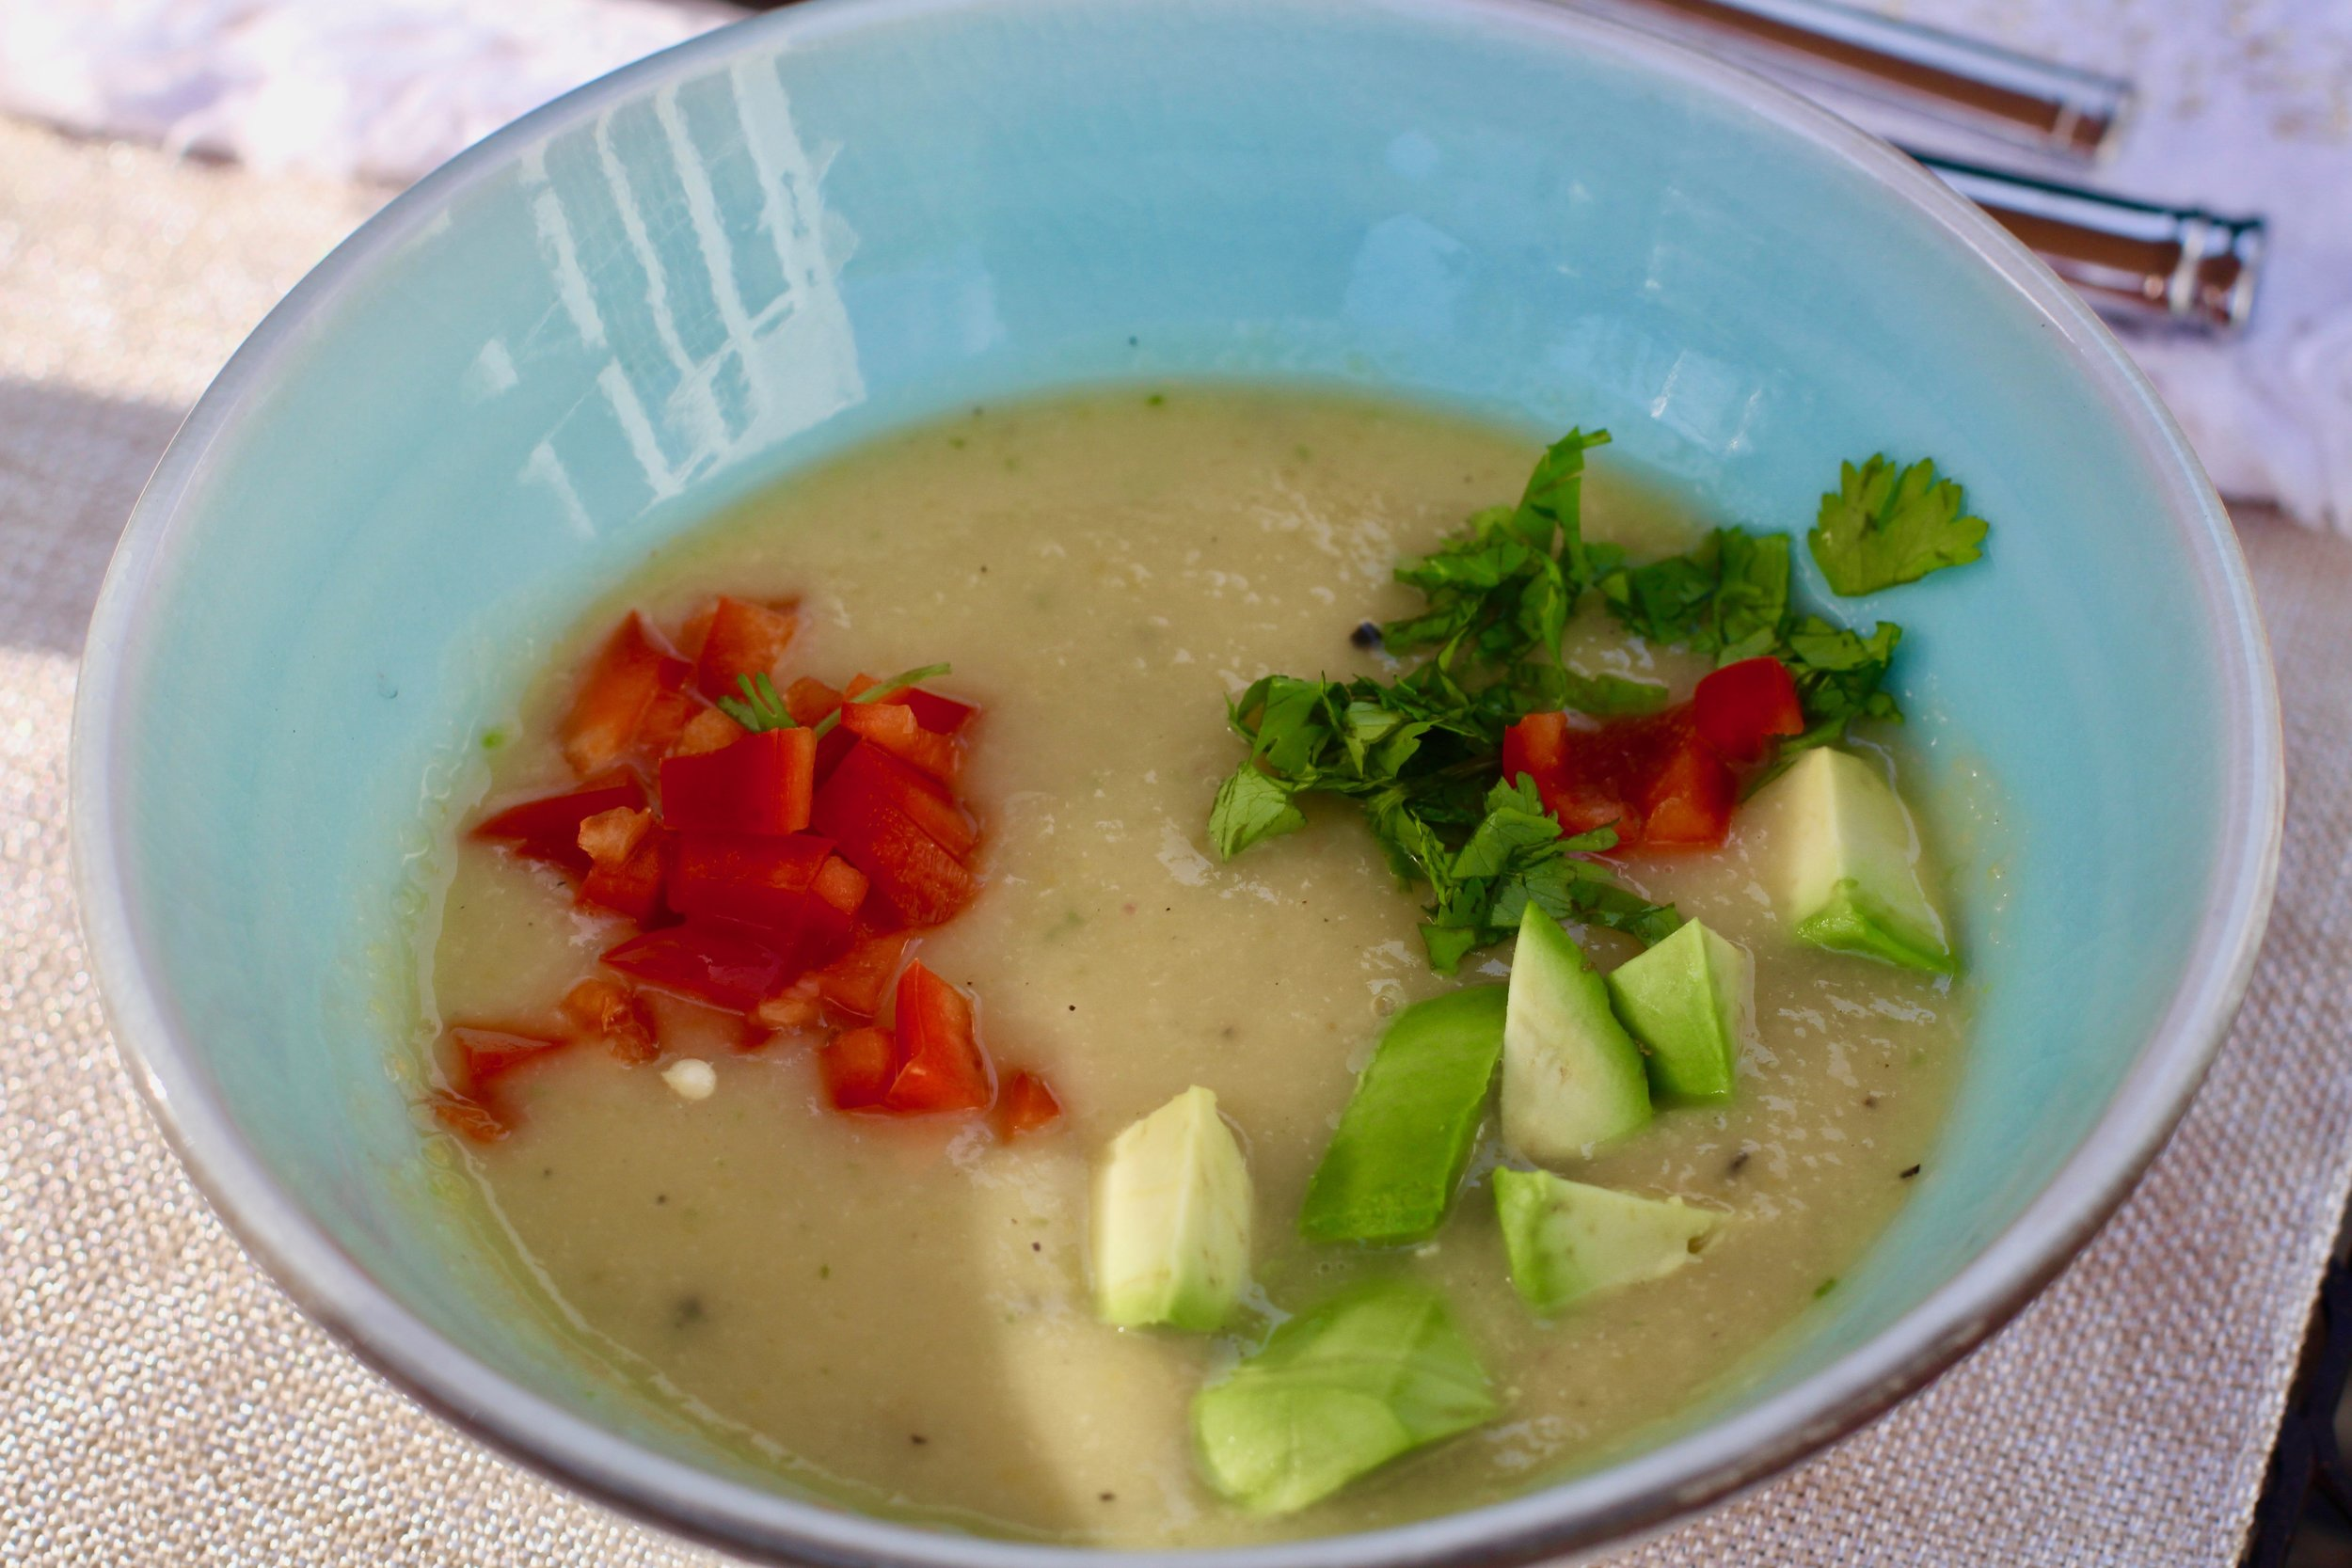 A very refreshing chilled soup that will encourage you to linger at the patio table on a warm summer day.